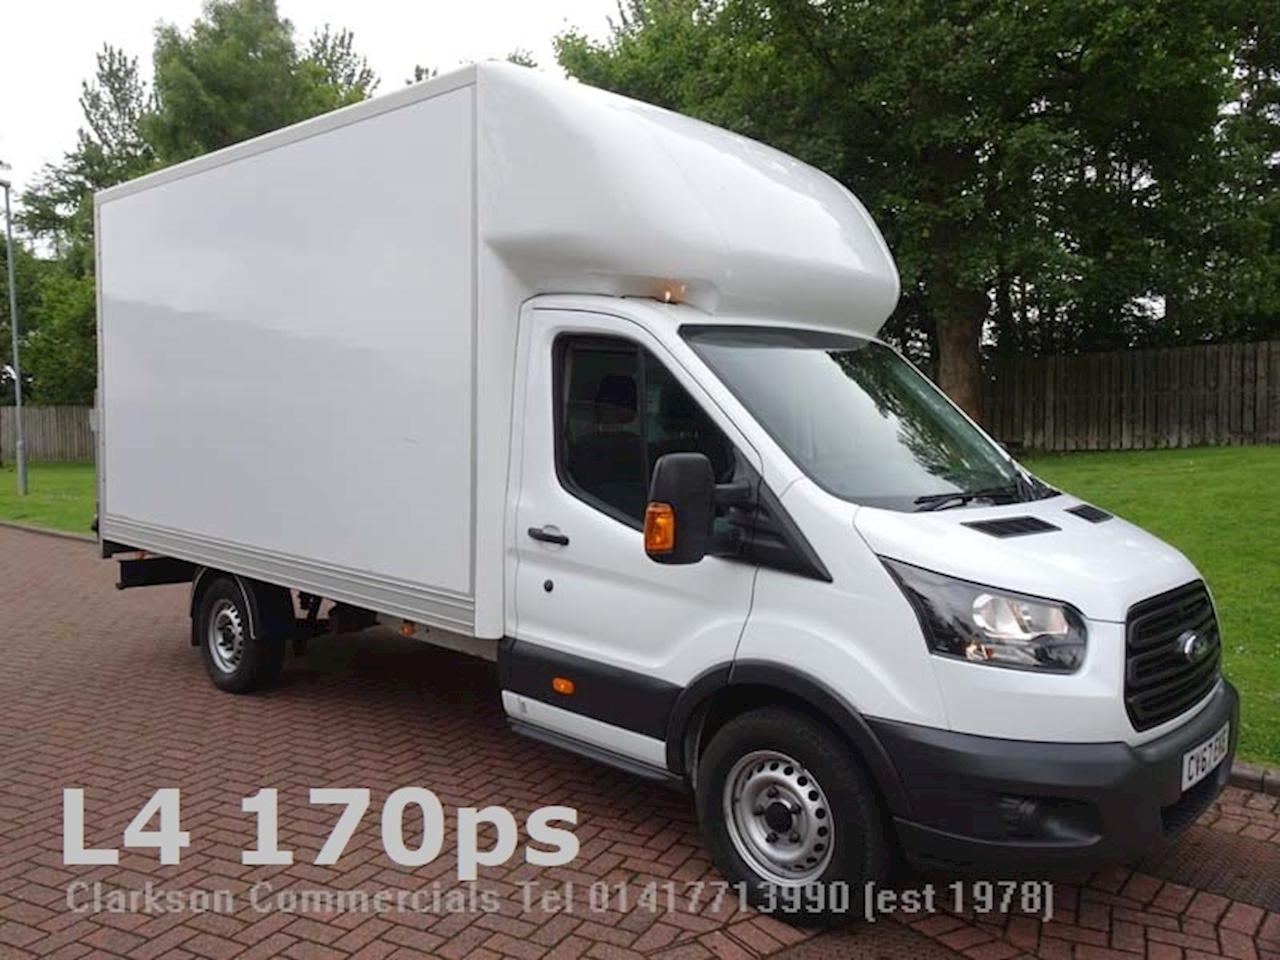 Ford Transit 350 L4 (EF-LWB) GRP luton & taillift, 2.0TDCi / big 170ps output 2.0 Luton Van Manual Diesel